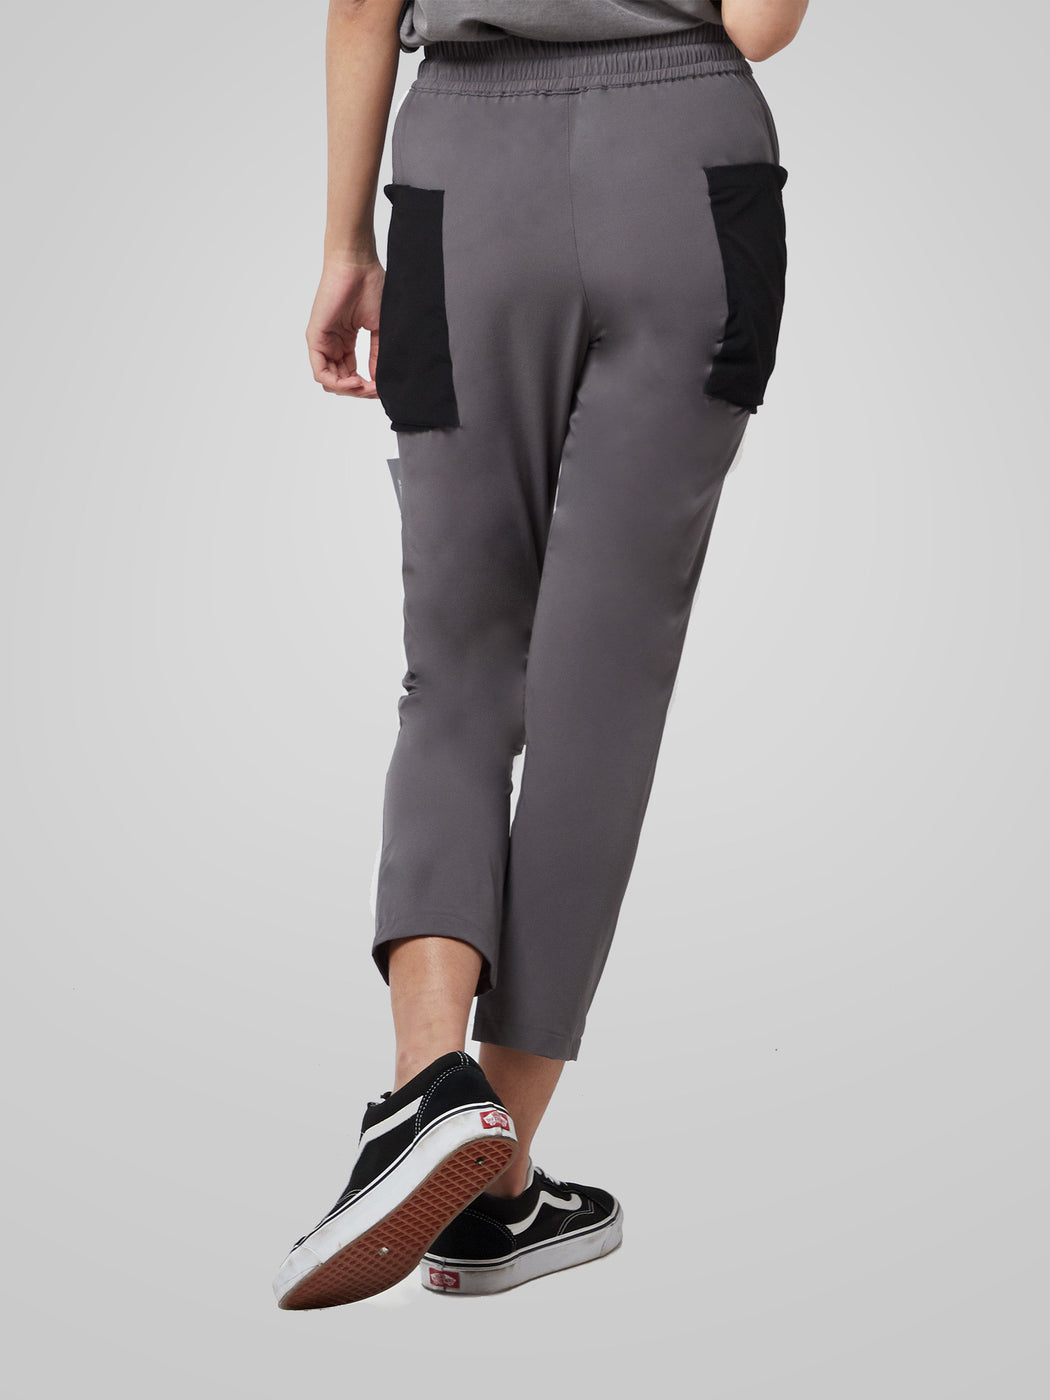 Grey Utilitarian Cargo Female Pants